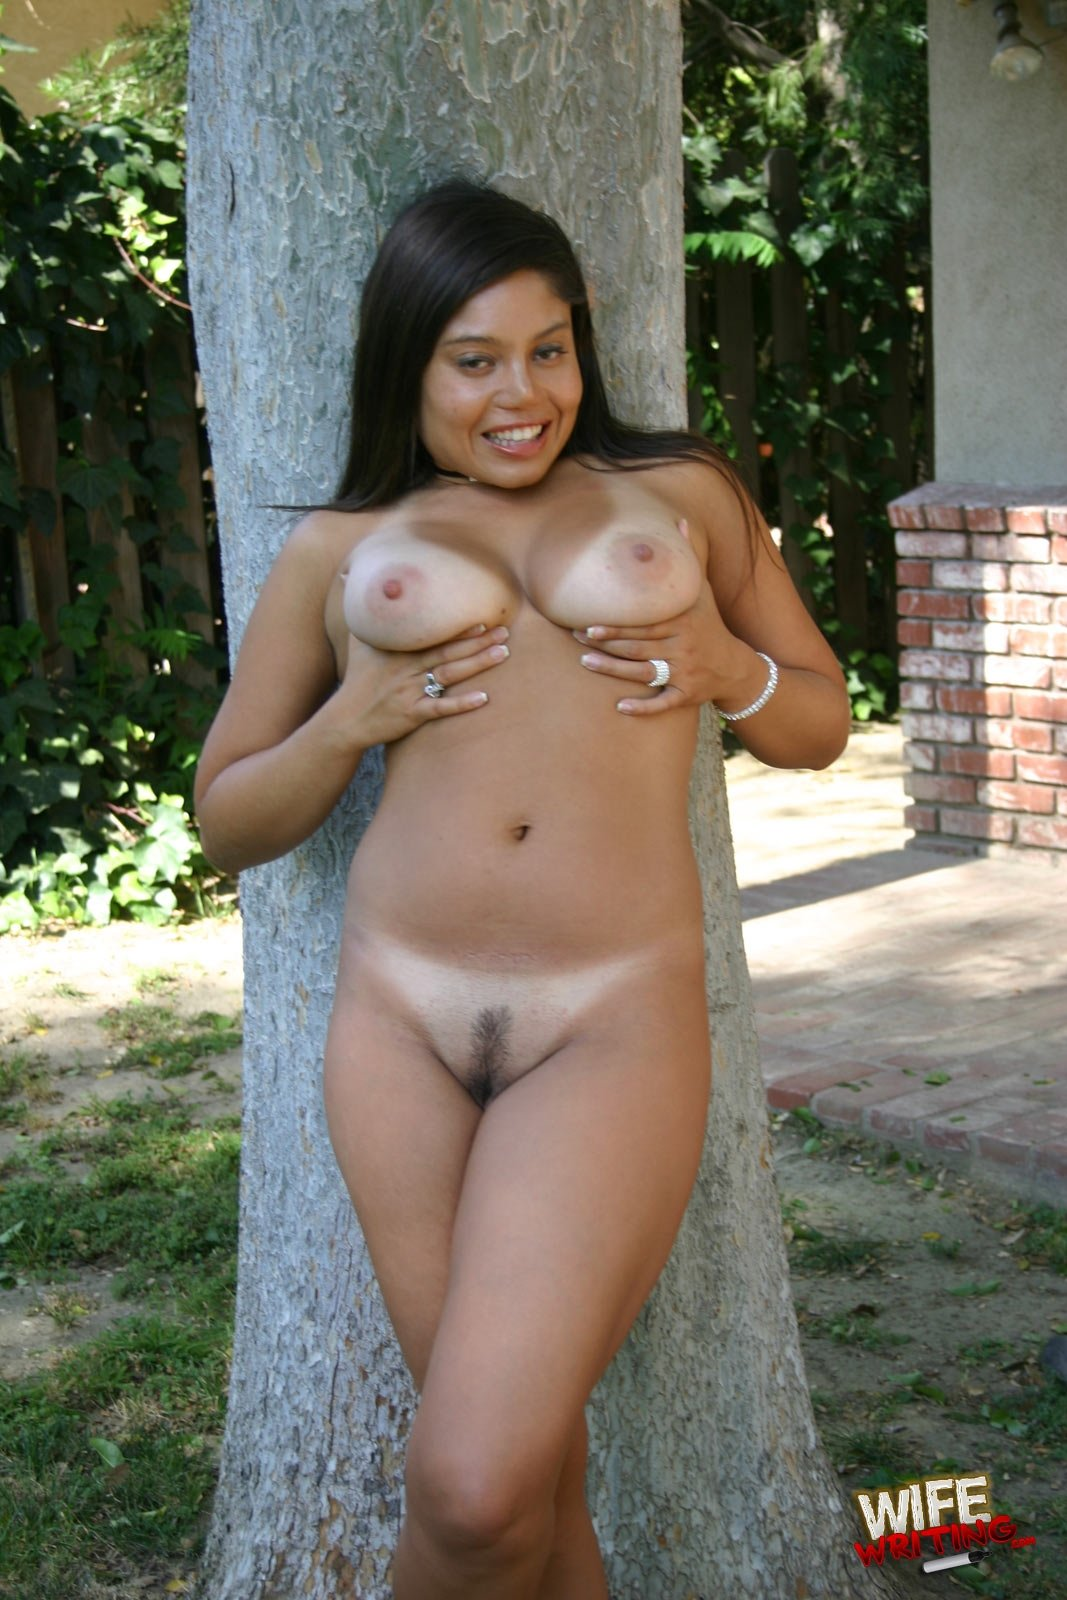 Dirty talk you to cheat horny wife friend